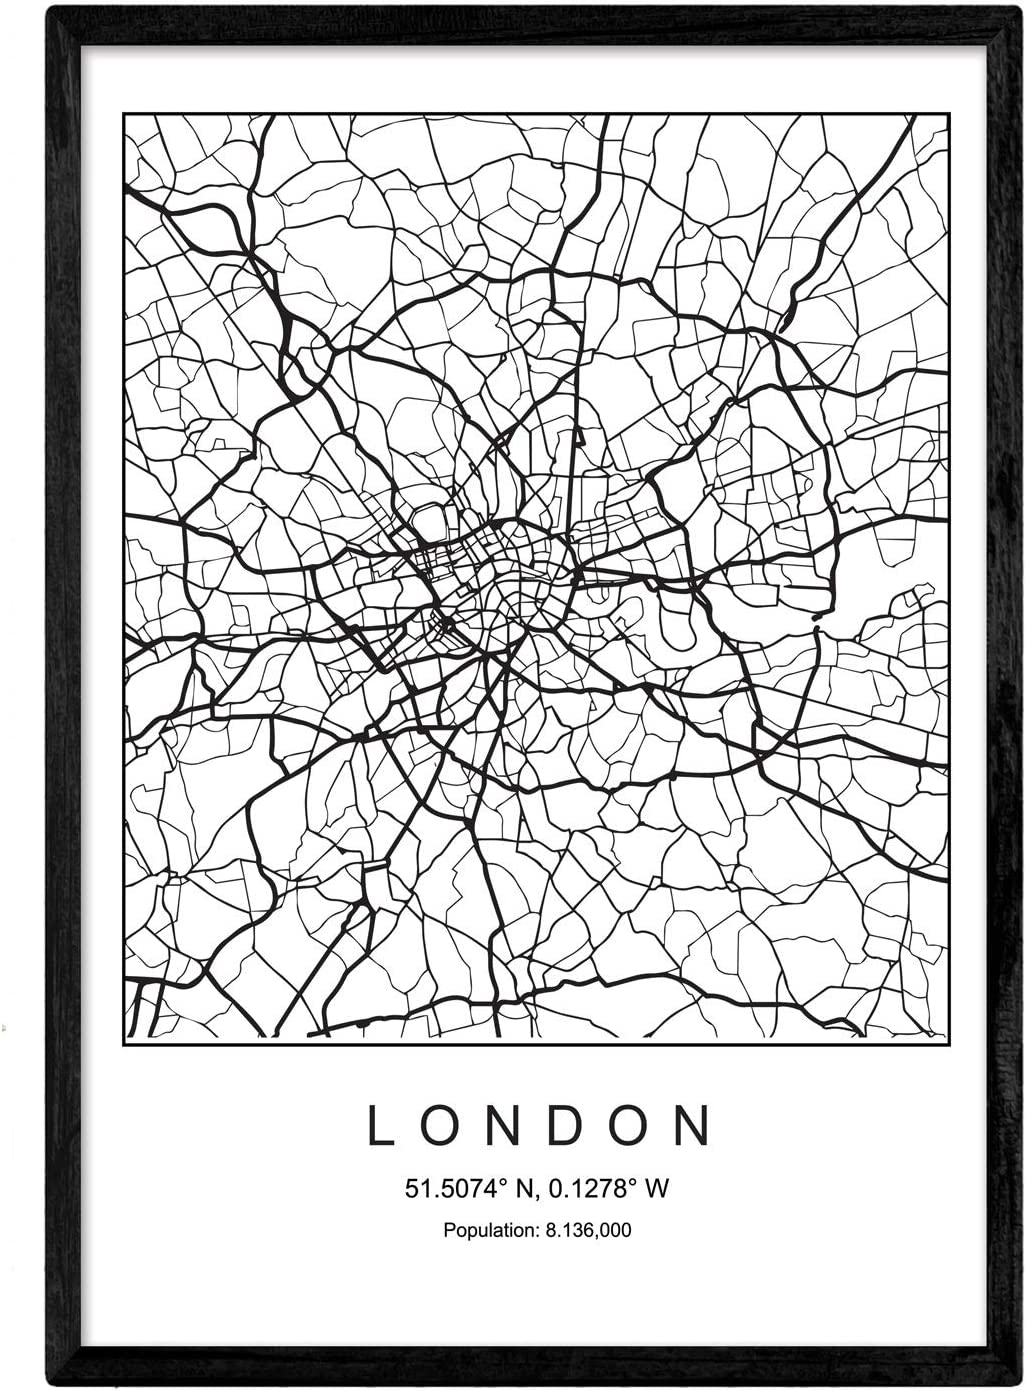 Print City map London Nordic Style Black and White. Poster 11'x17' Size Printed Paper Unframed 250 gr. Paintings, Prints and Posters for Living Room and Bedroom